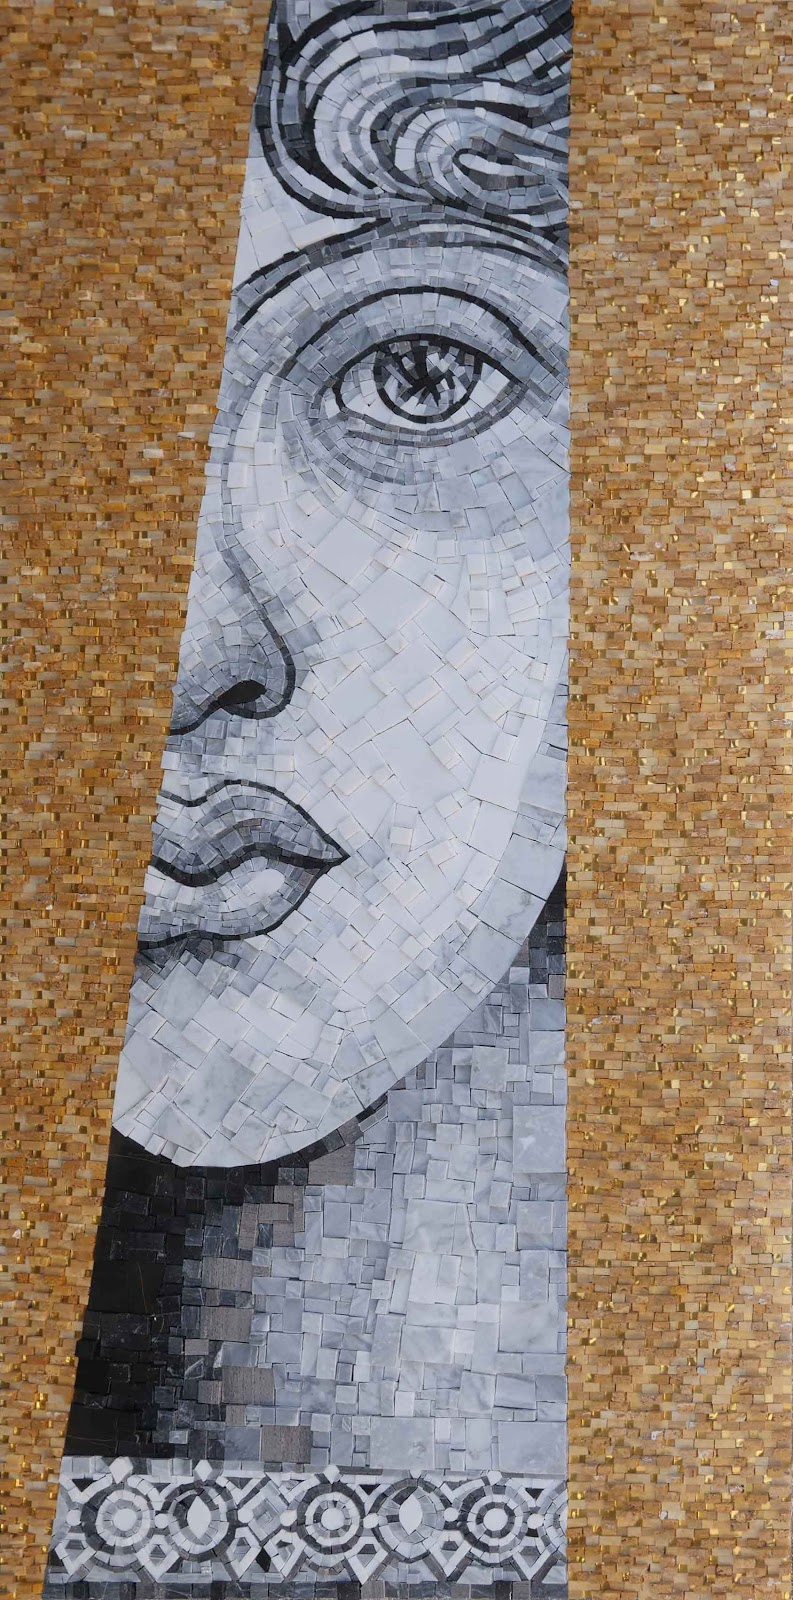 The Roman Lady Mosaic Portrait by Mozaico